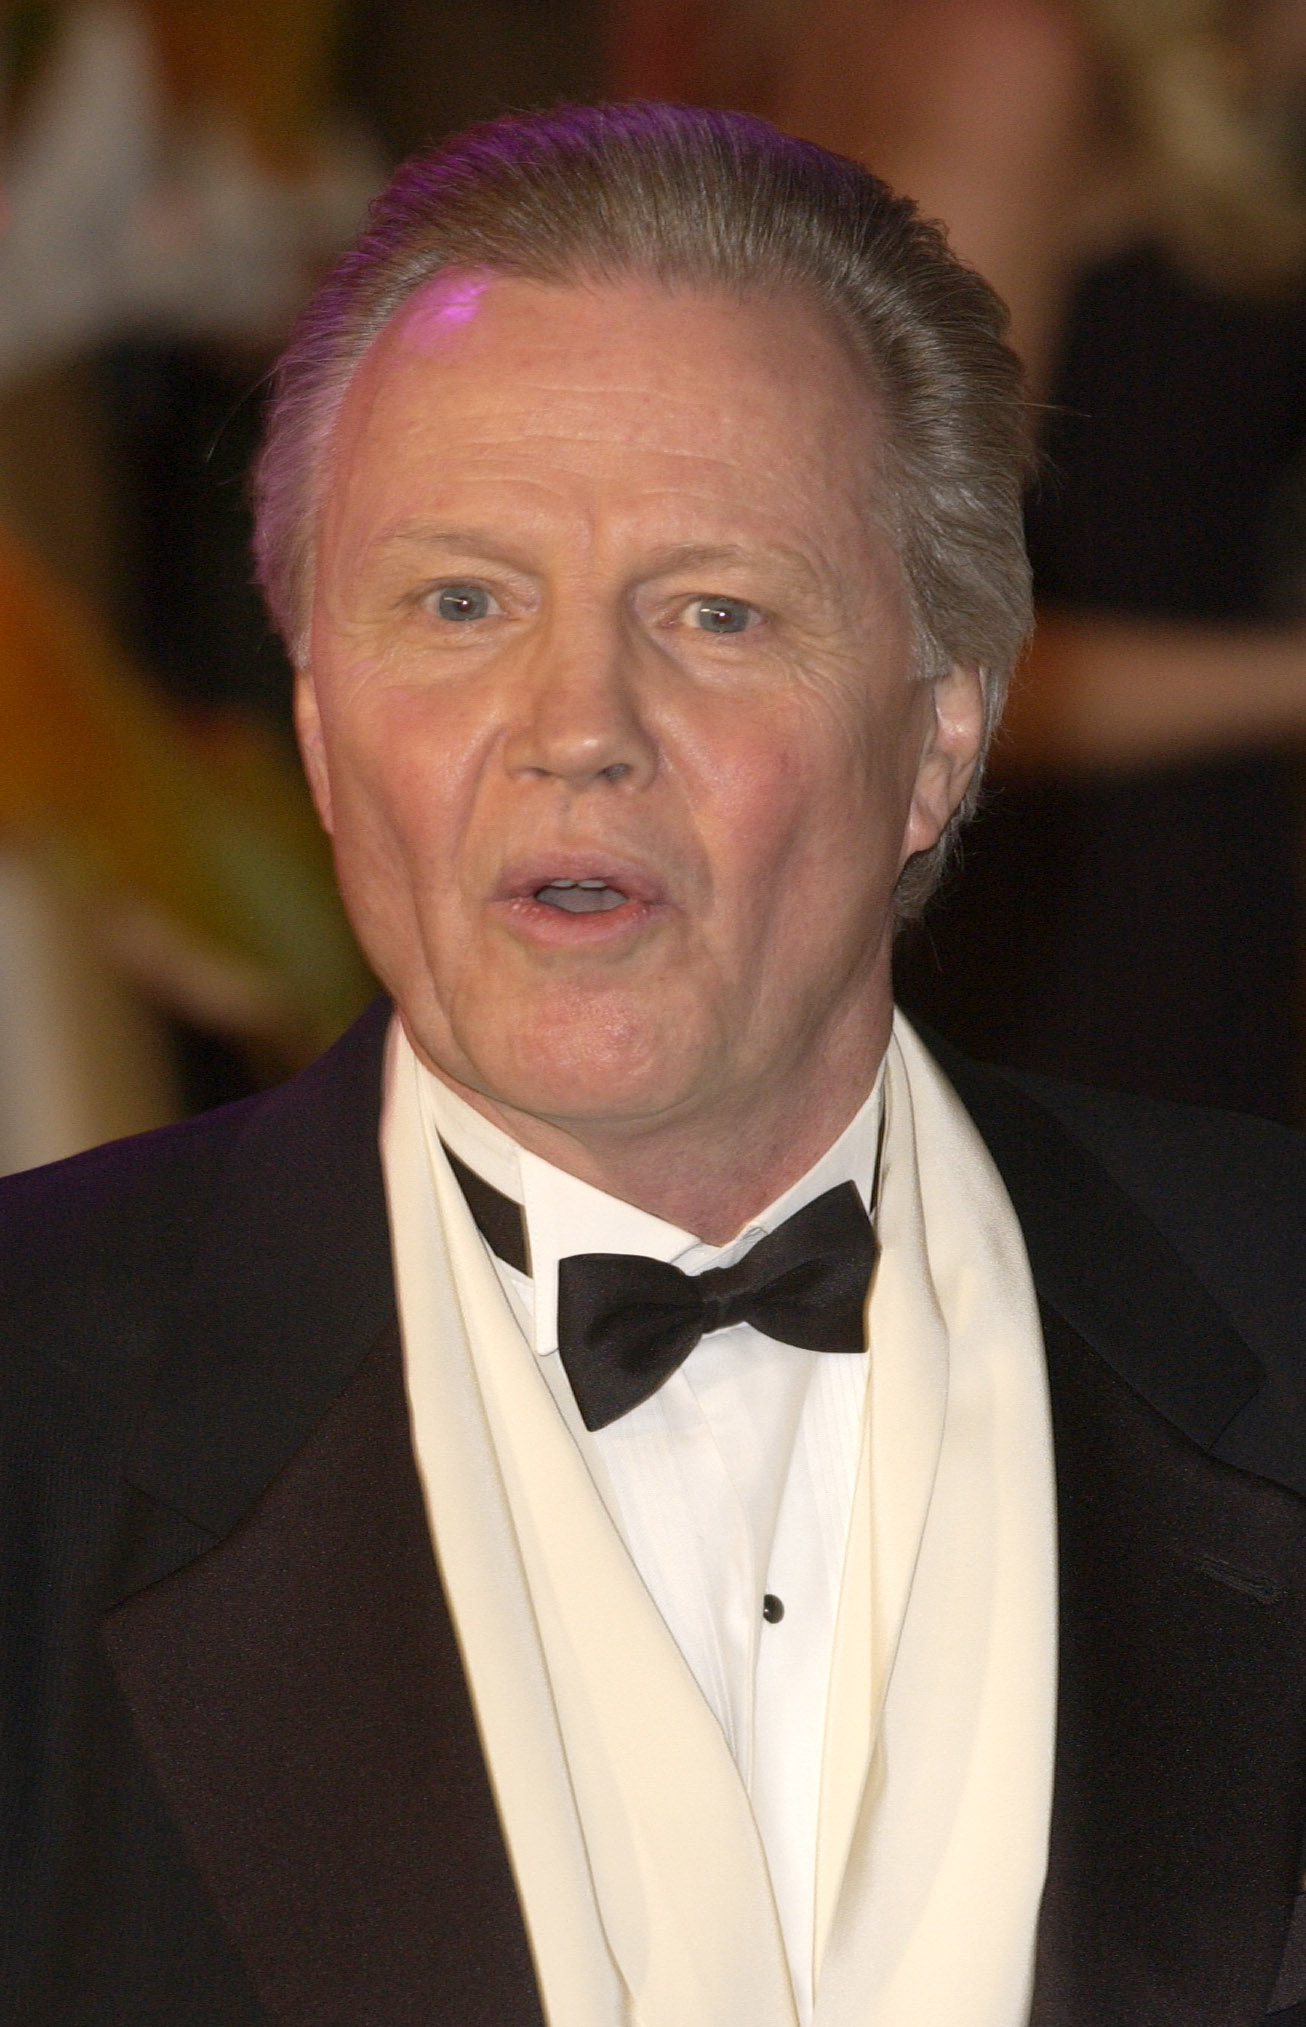 Actor John Voight arrives for the Vanity Fair afterparty at Morton's, Melrose Avenue in Los Angeles